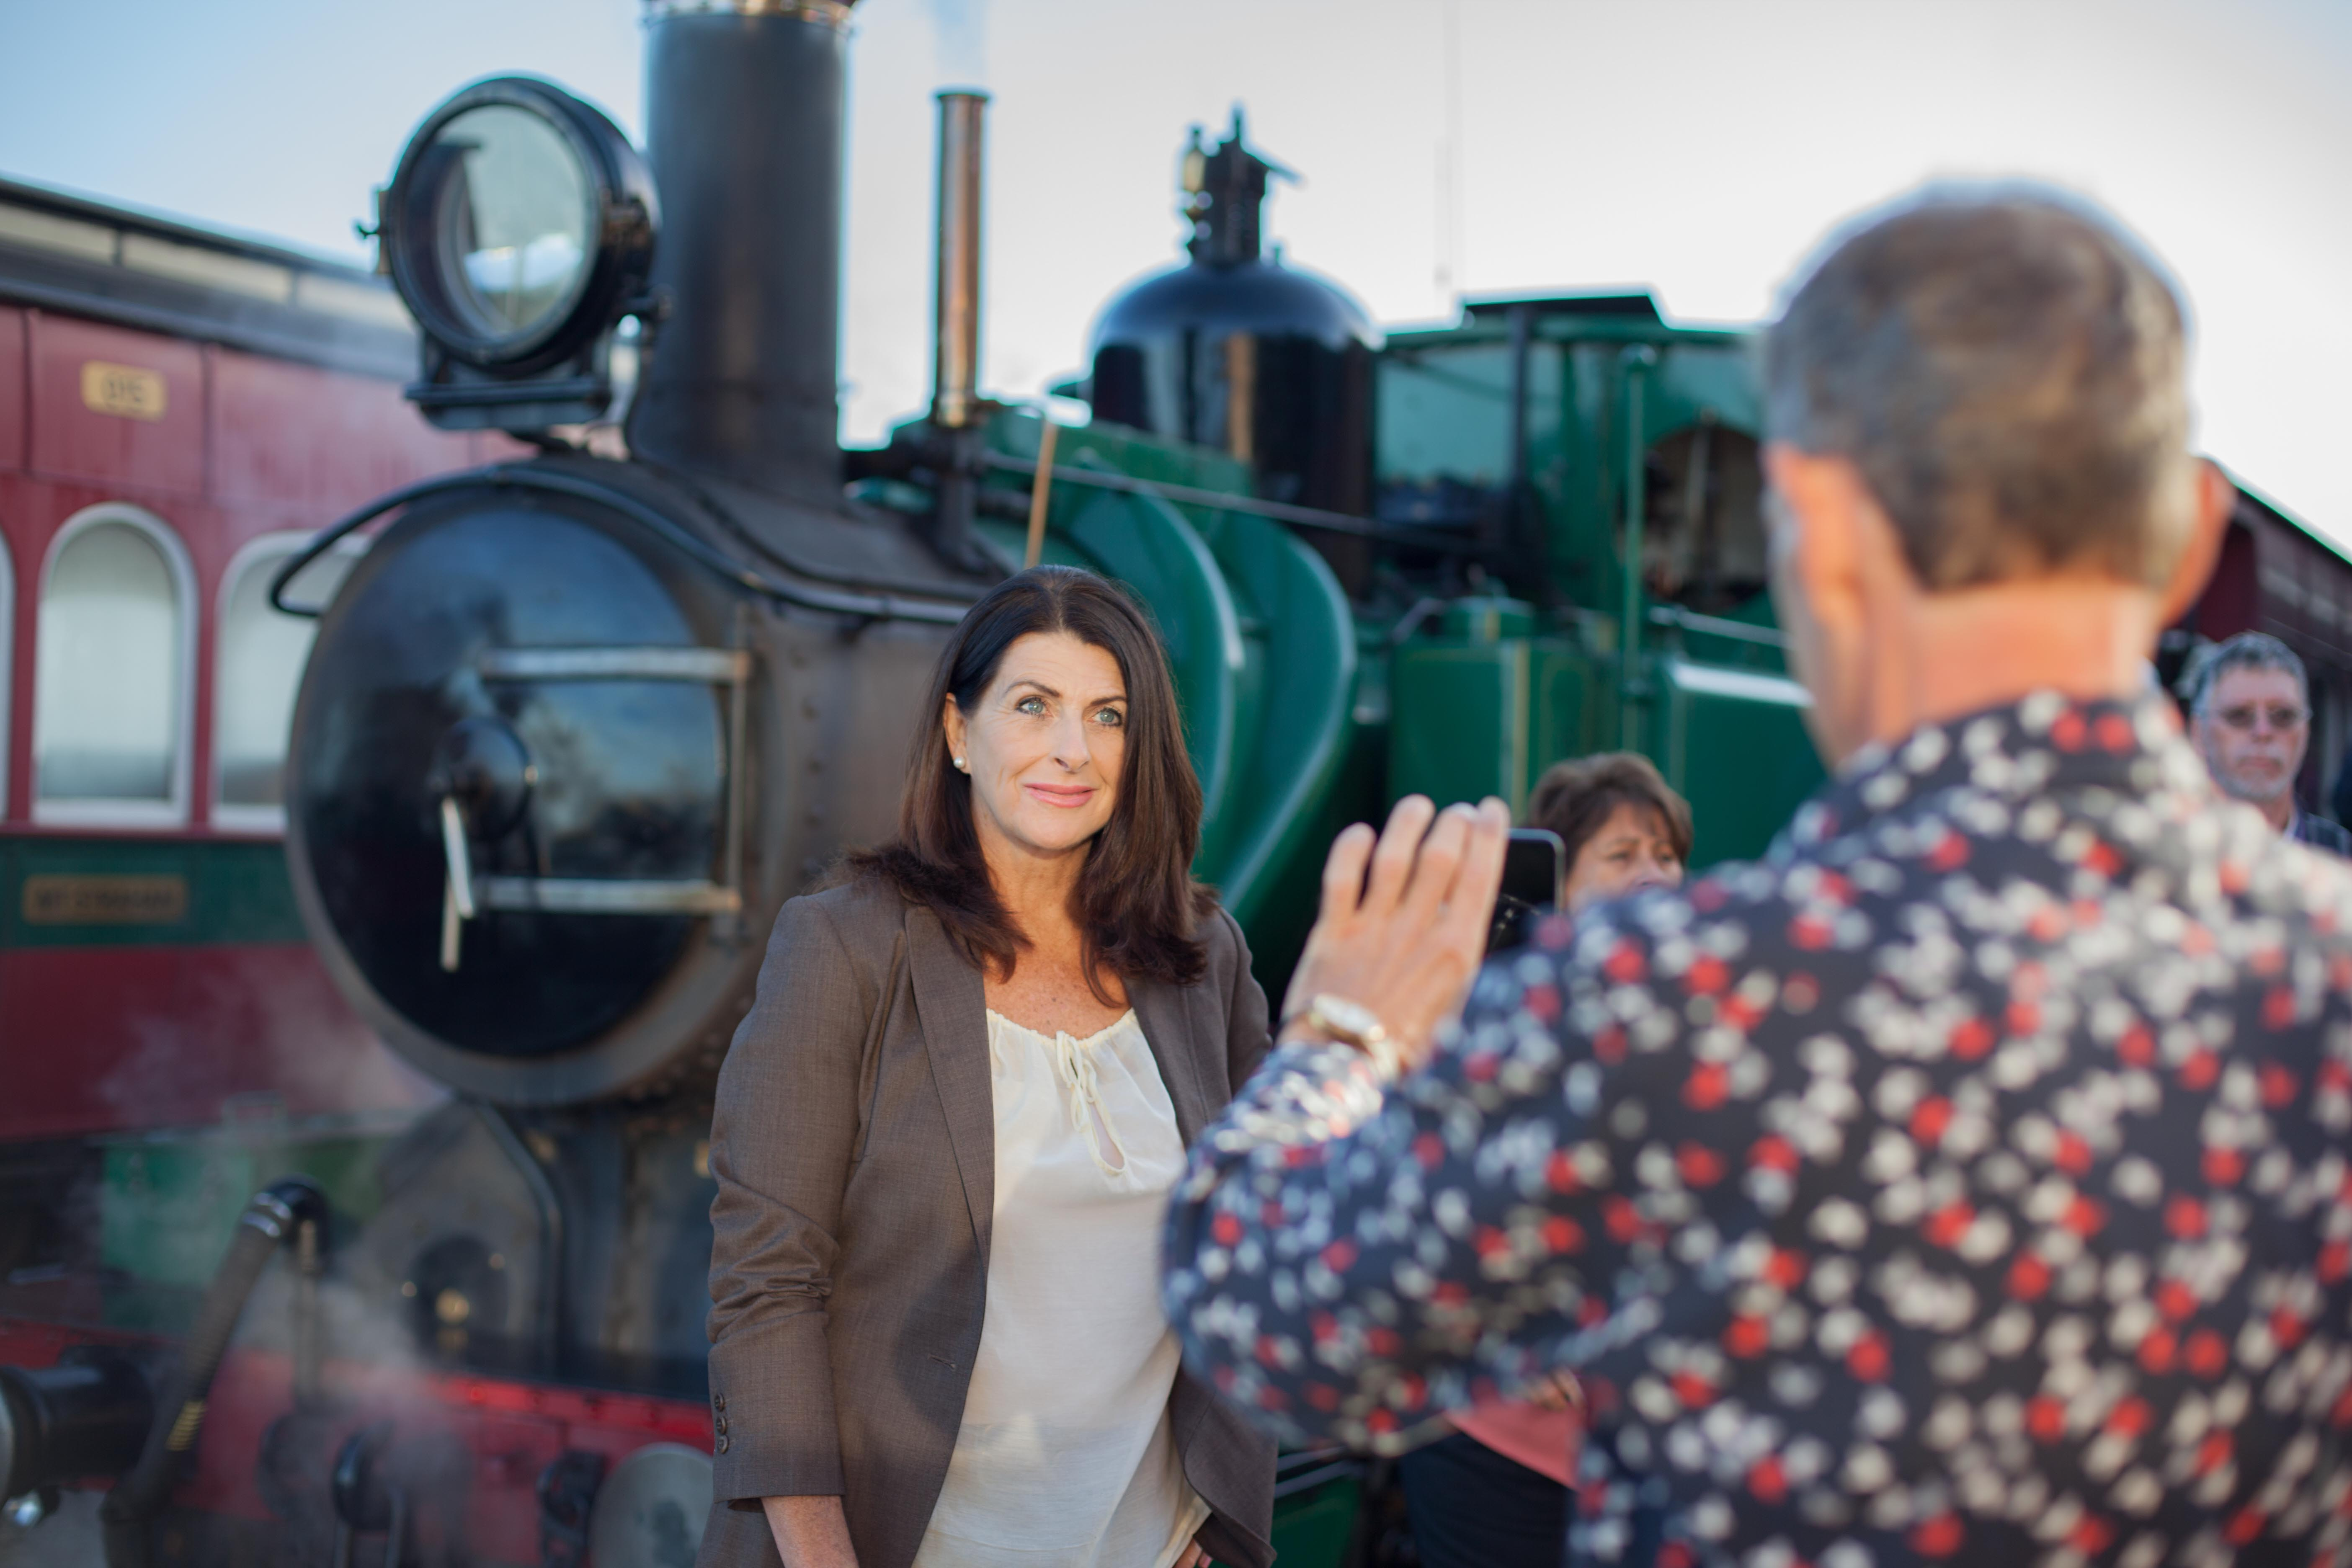 Visitors take photographs by the West Coast Wilderness Railway locomotive